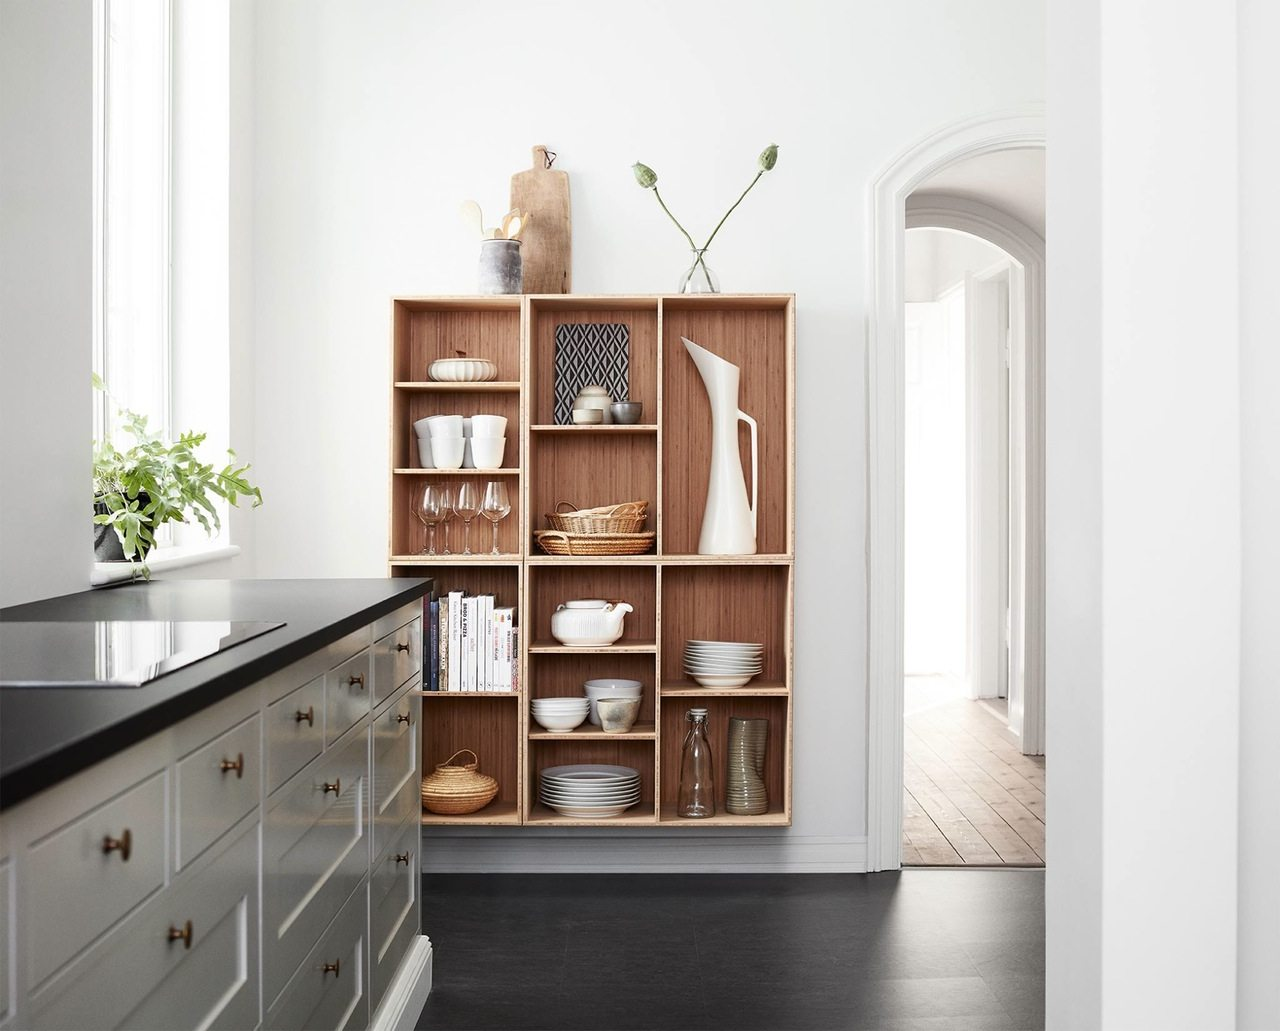 Storage Ideas From Hipvan For An Organised Clutter Free Home